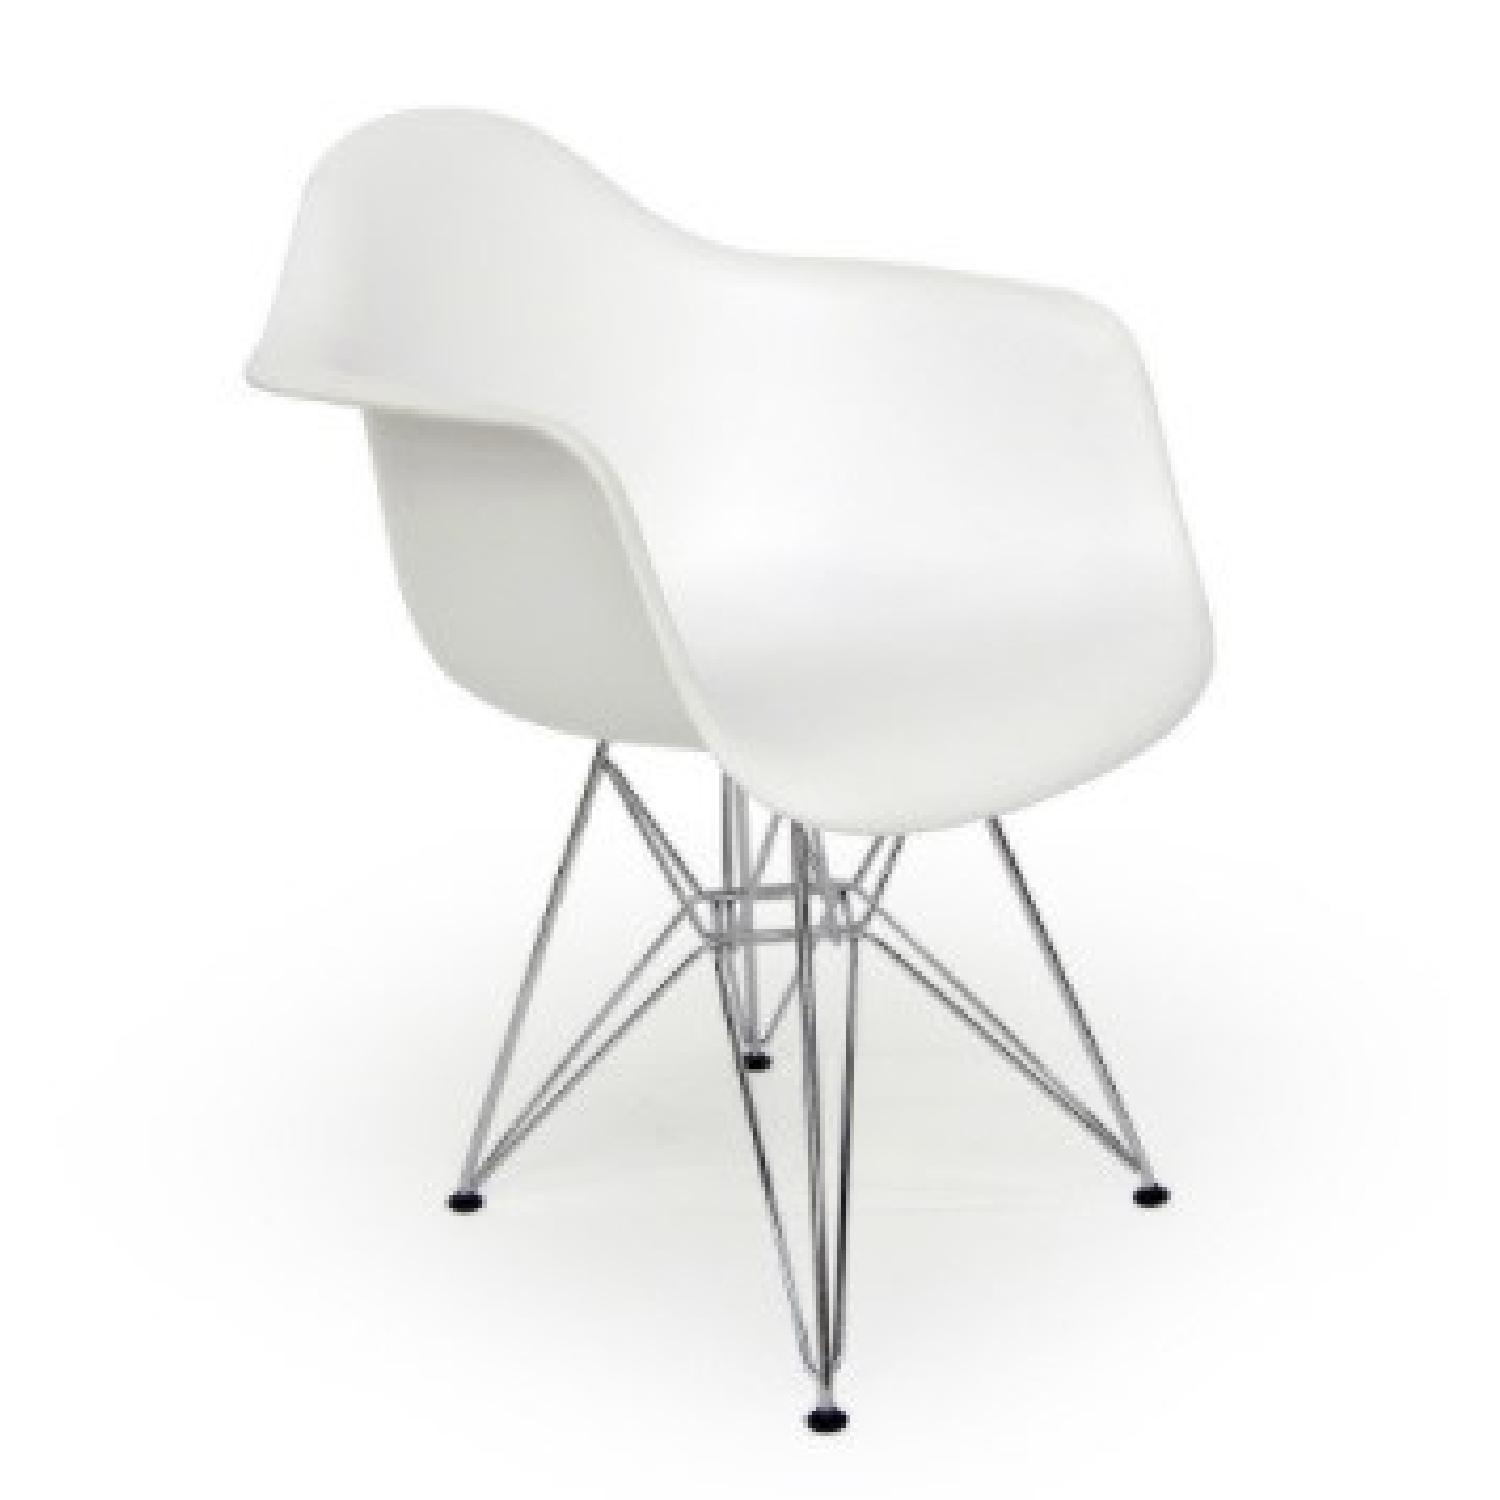 Sit Down New York Mid-Century Dining Chairs - image-8